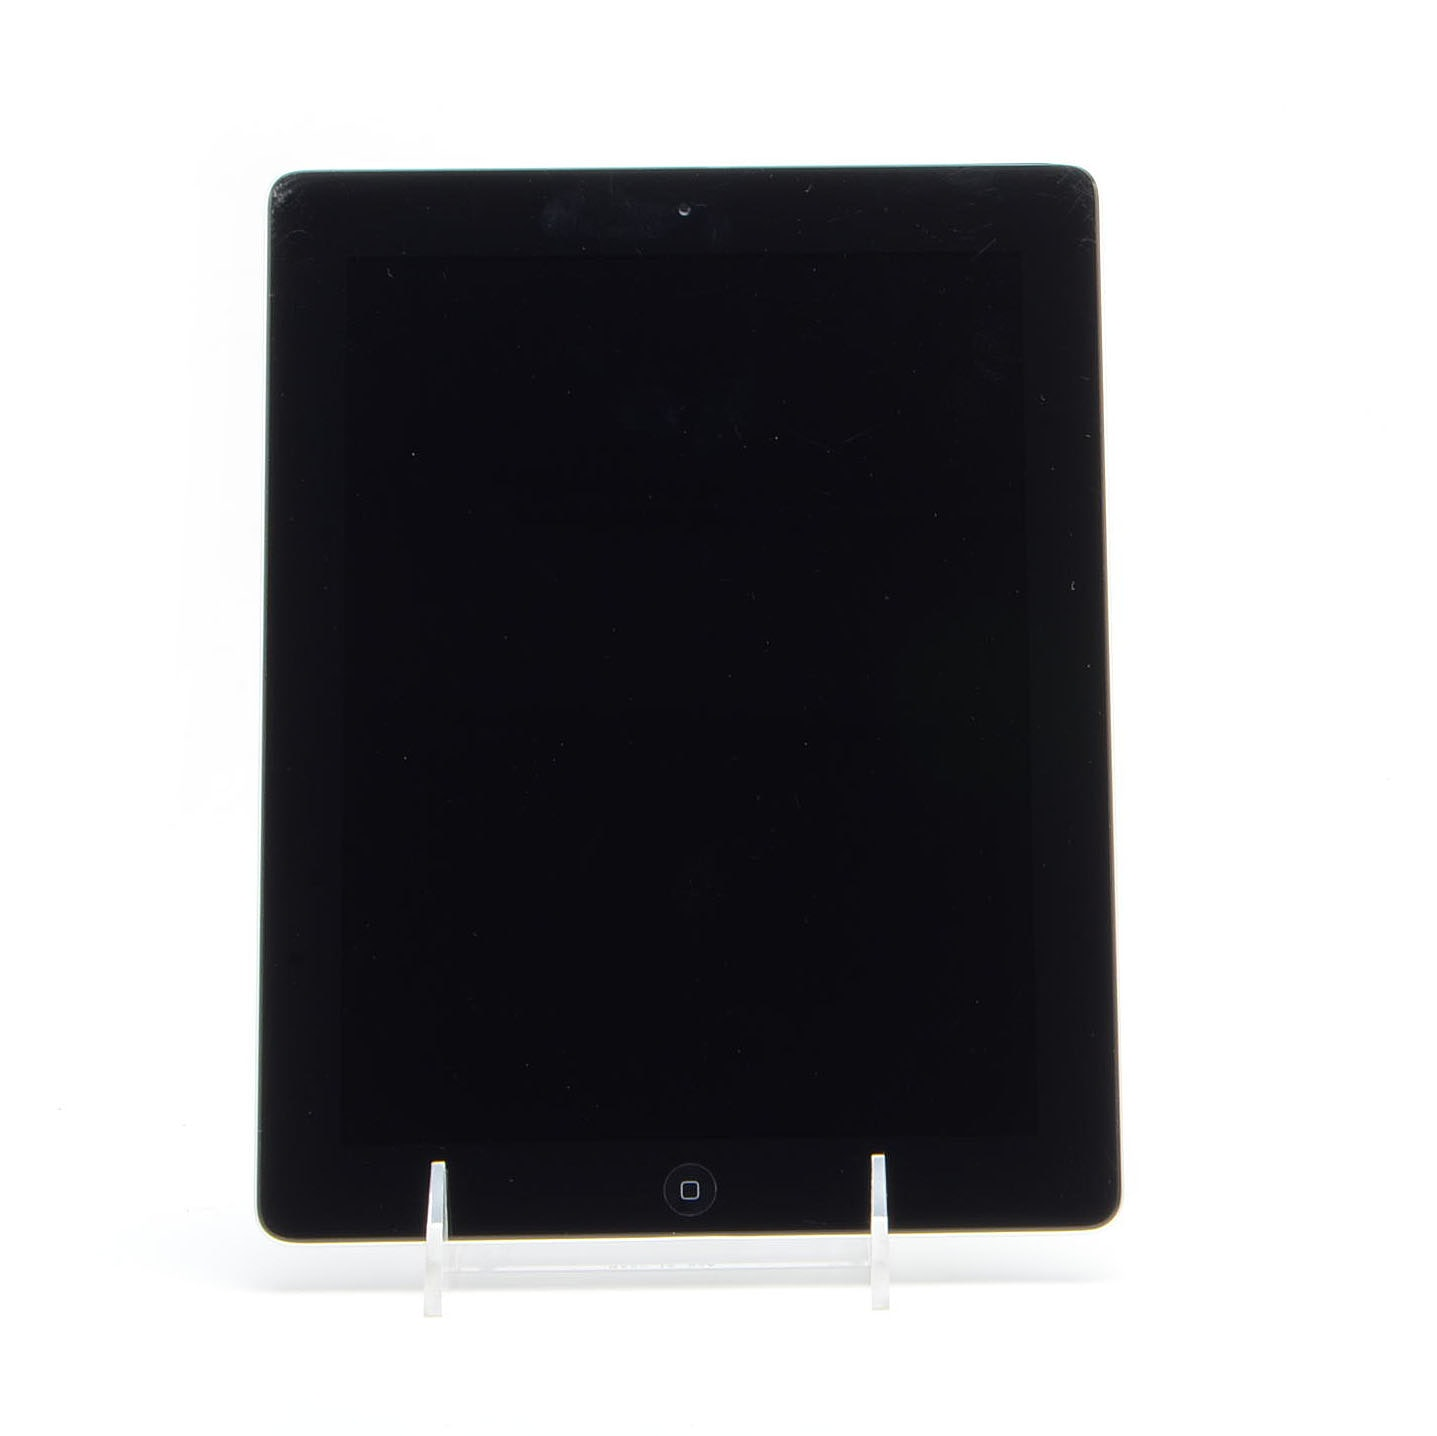 iPad 2 Tablet